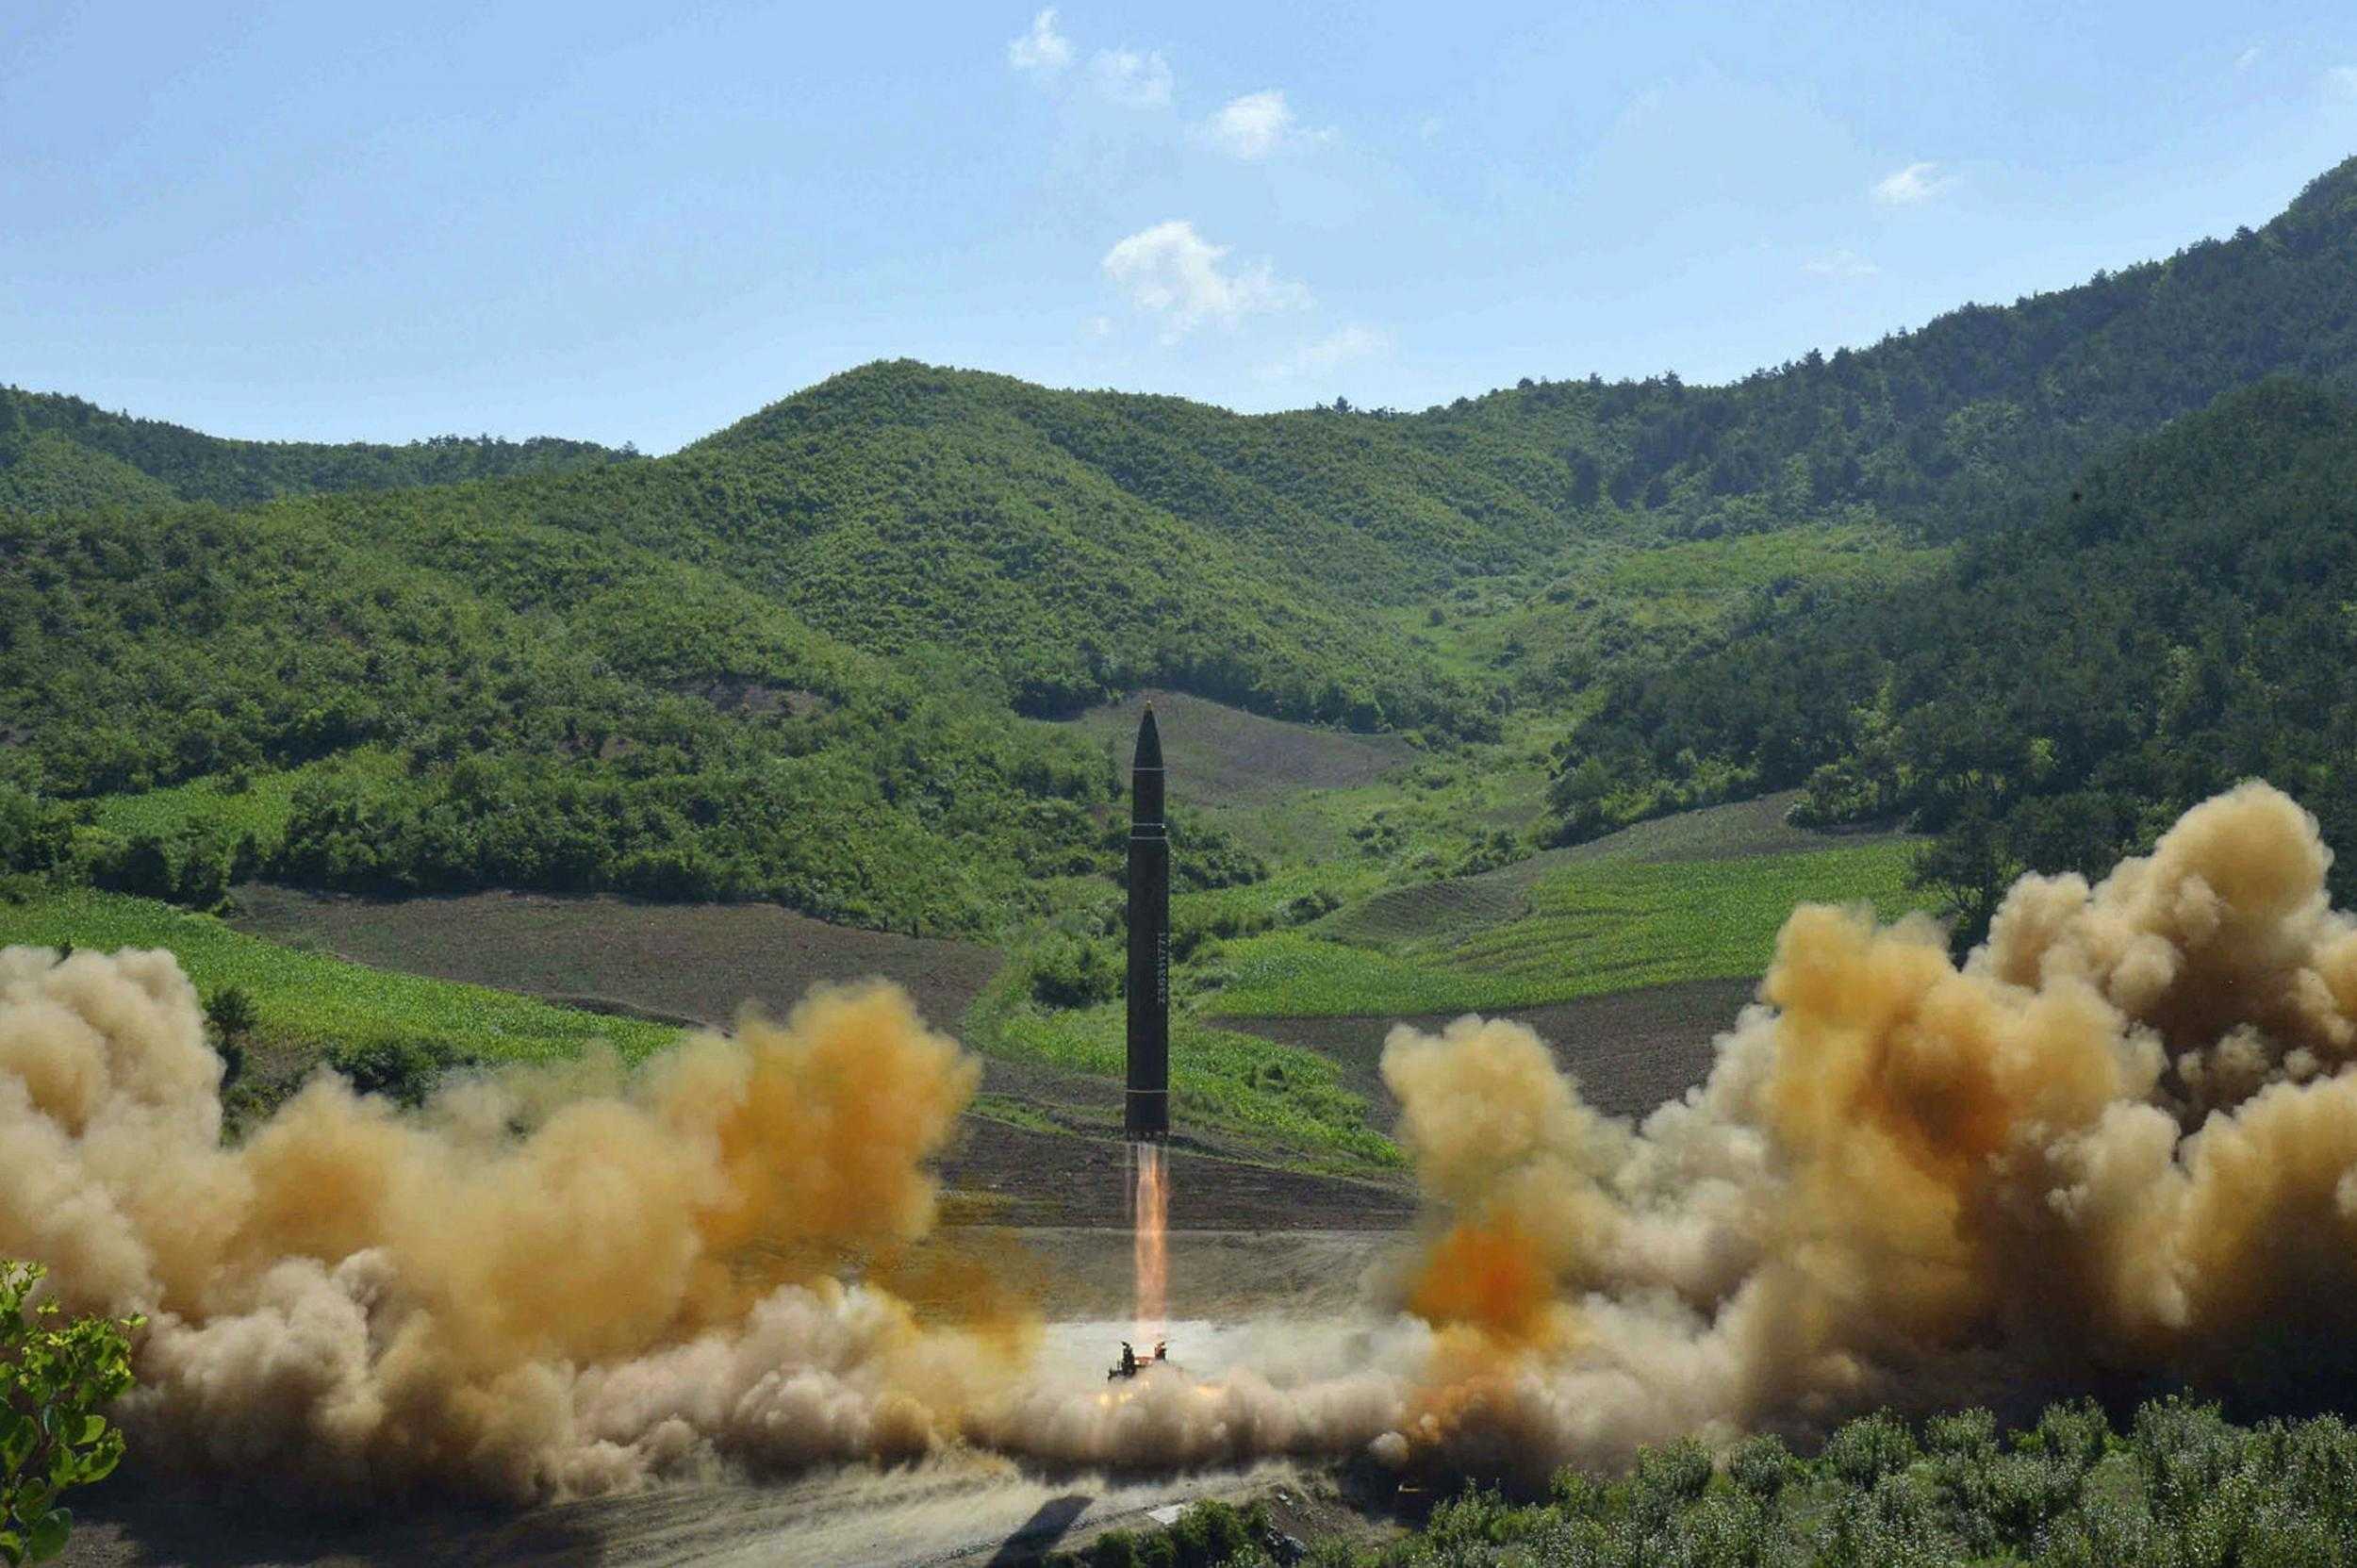 North Korea launches ballistic missile: